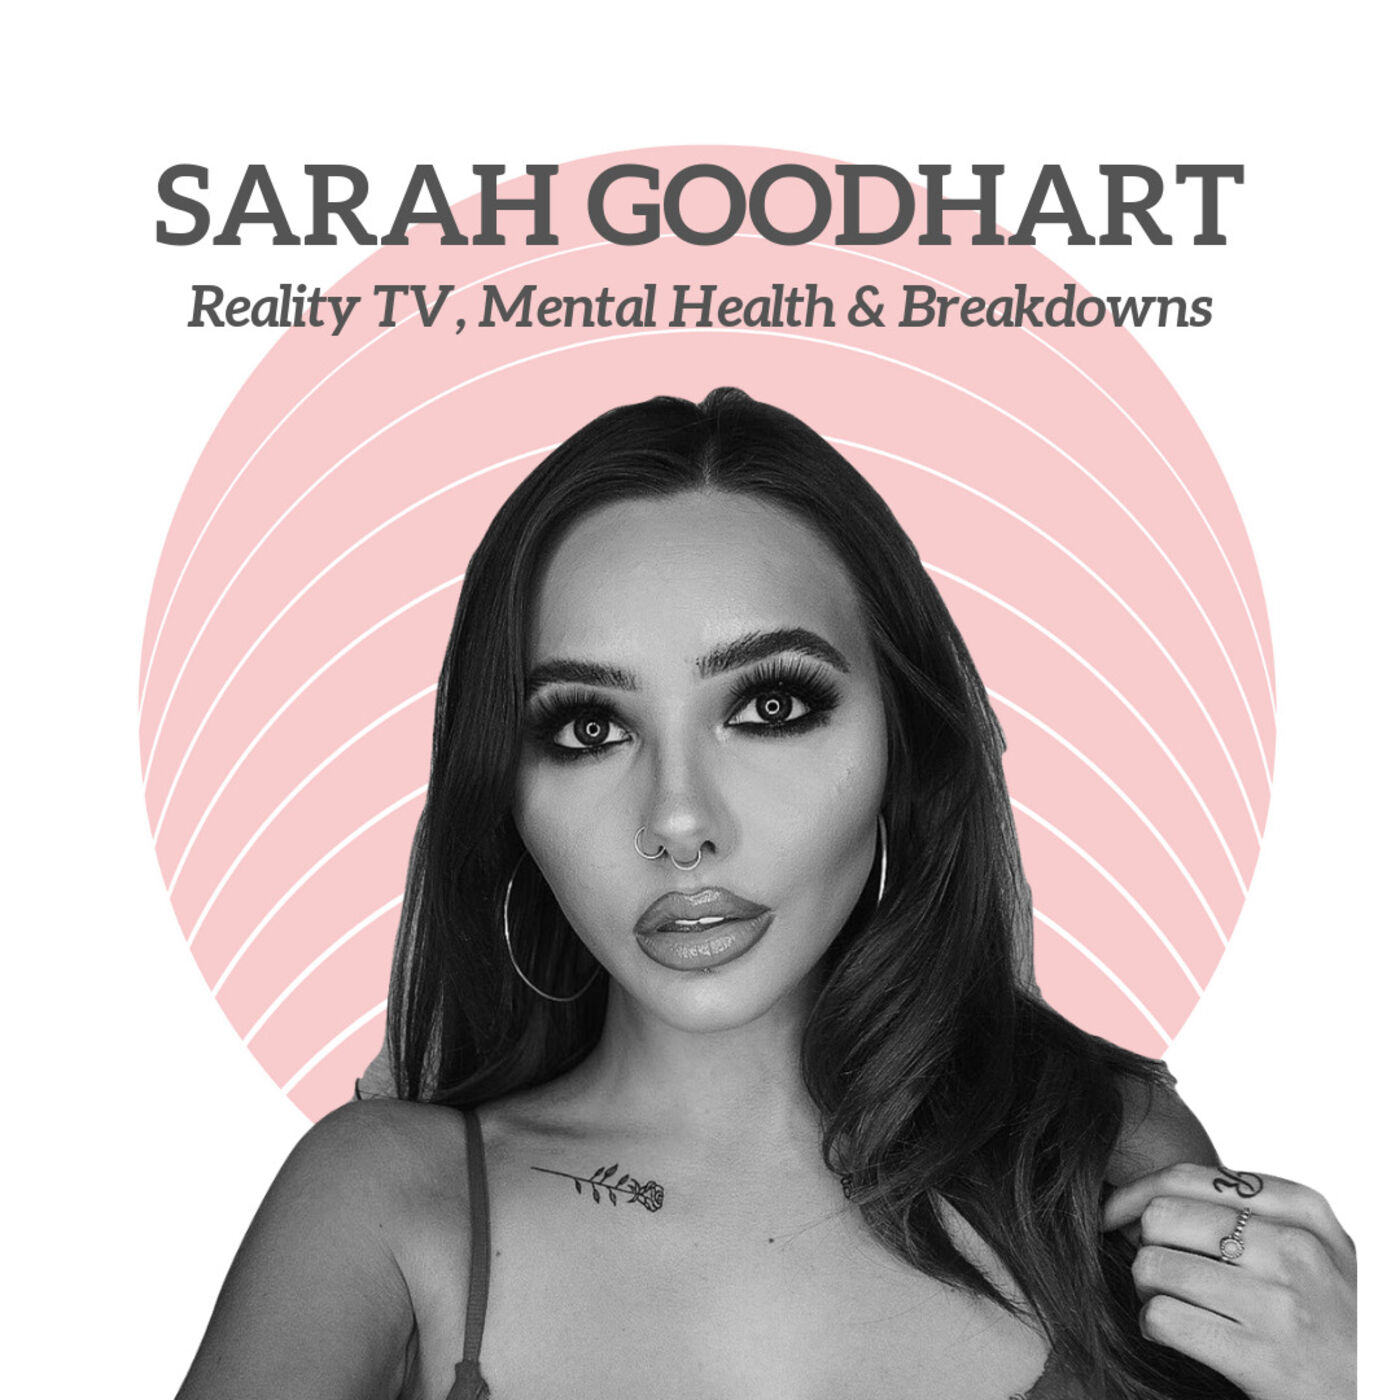 Sarah Goodhart (Geordie Shore) - Reality TV, Mental Health & Breakdowns